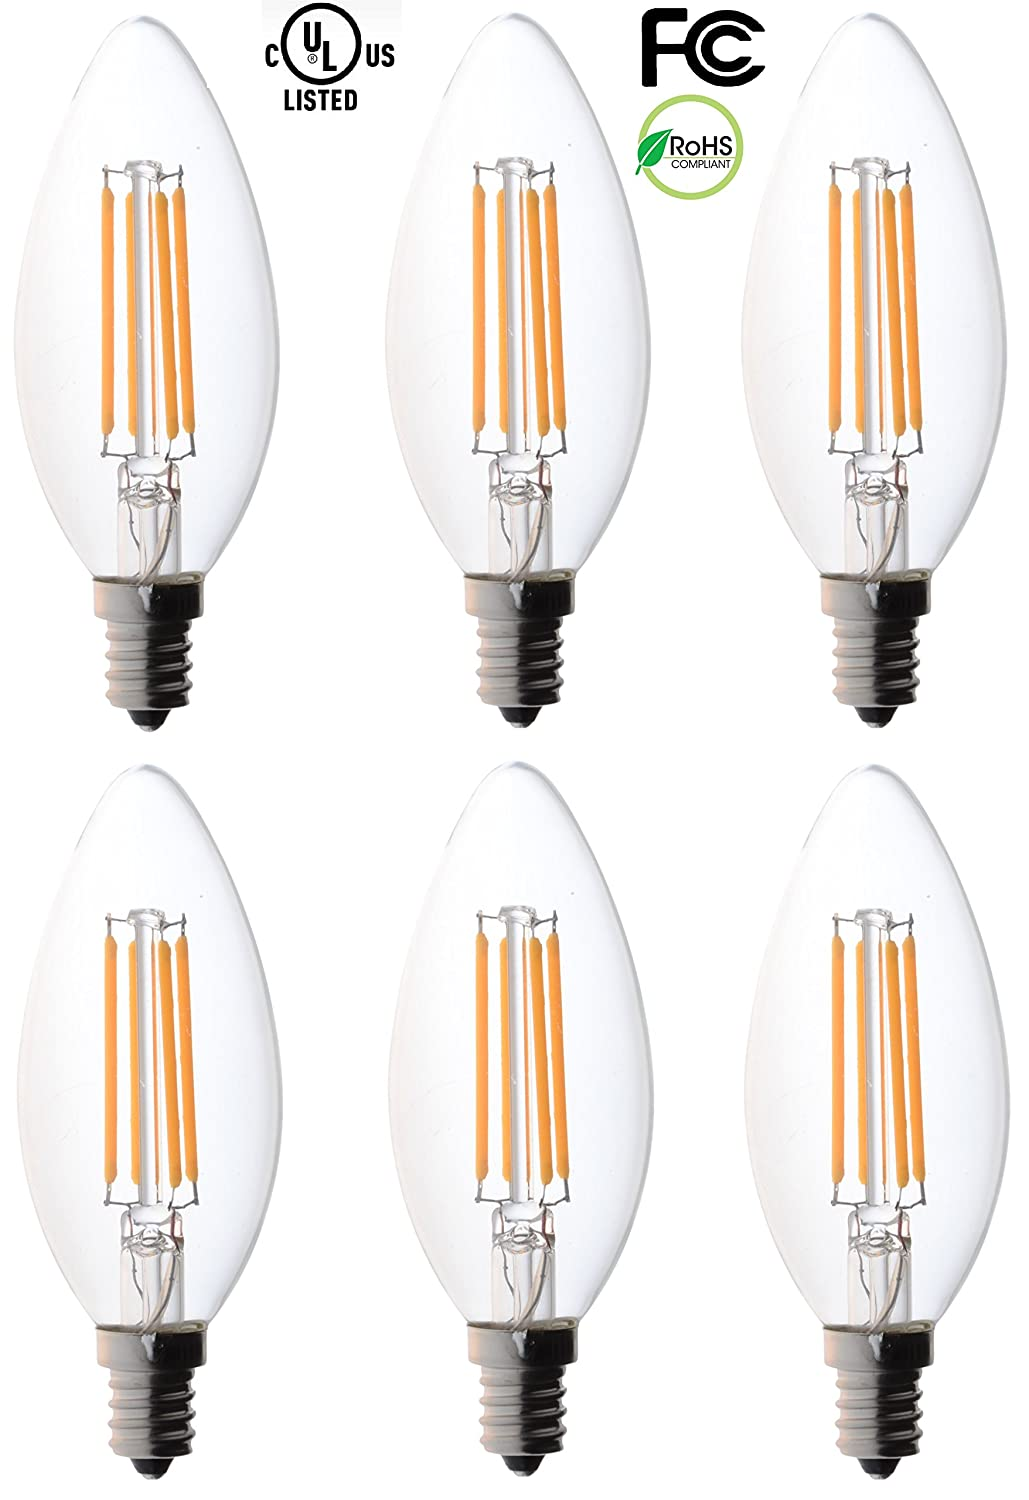 6 pack bioluz led filament candelabra clear led bulbs e12 base 6 pack bioluz led filament candelabra clear led bulbs e12 base c37 high efficiency 360 led candle bulbs pack of 6 amazon arubaitofo Image collections